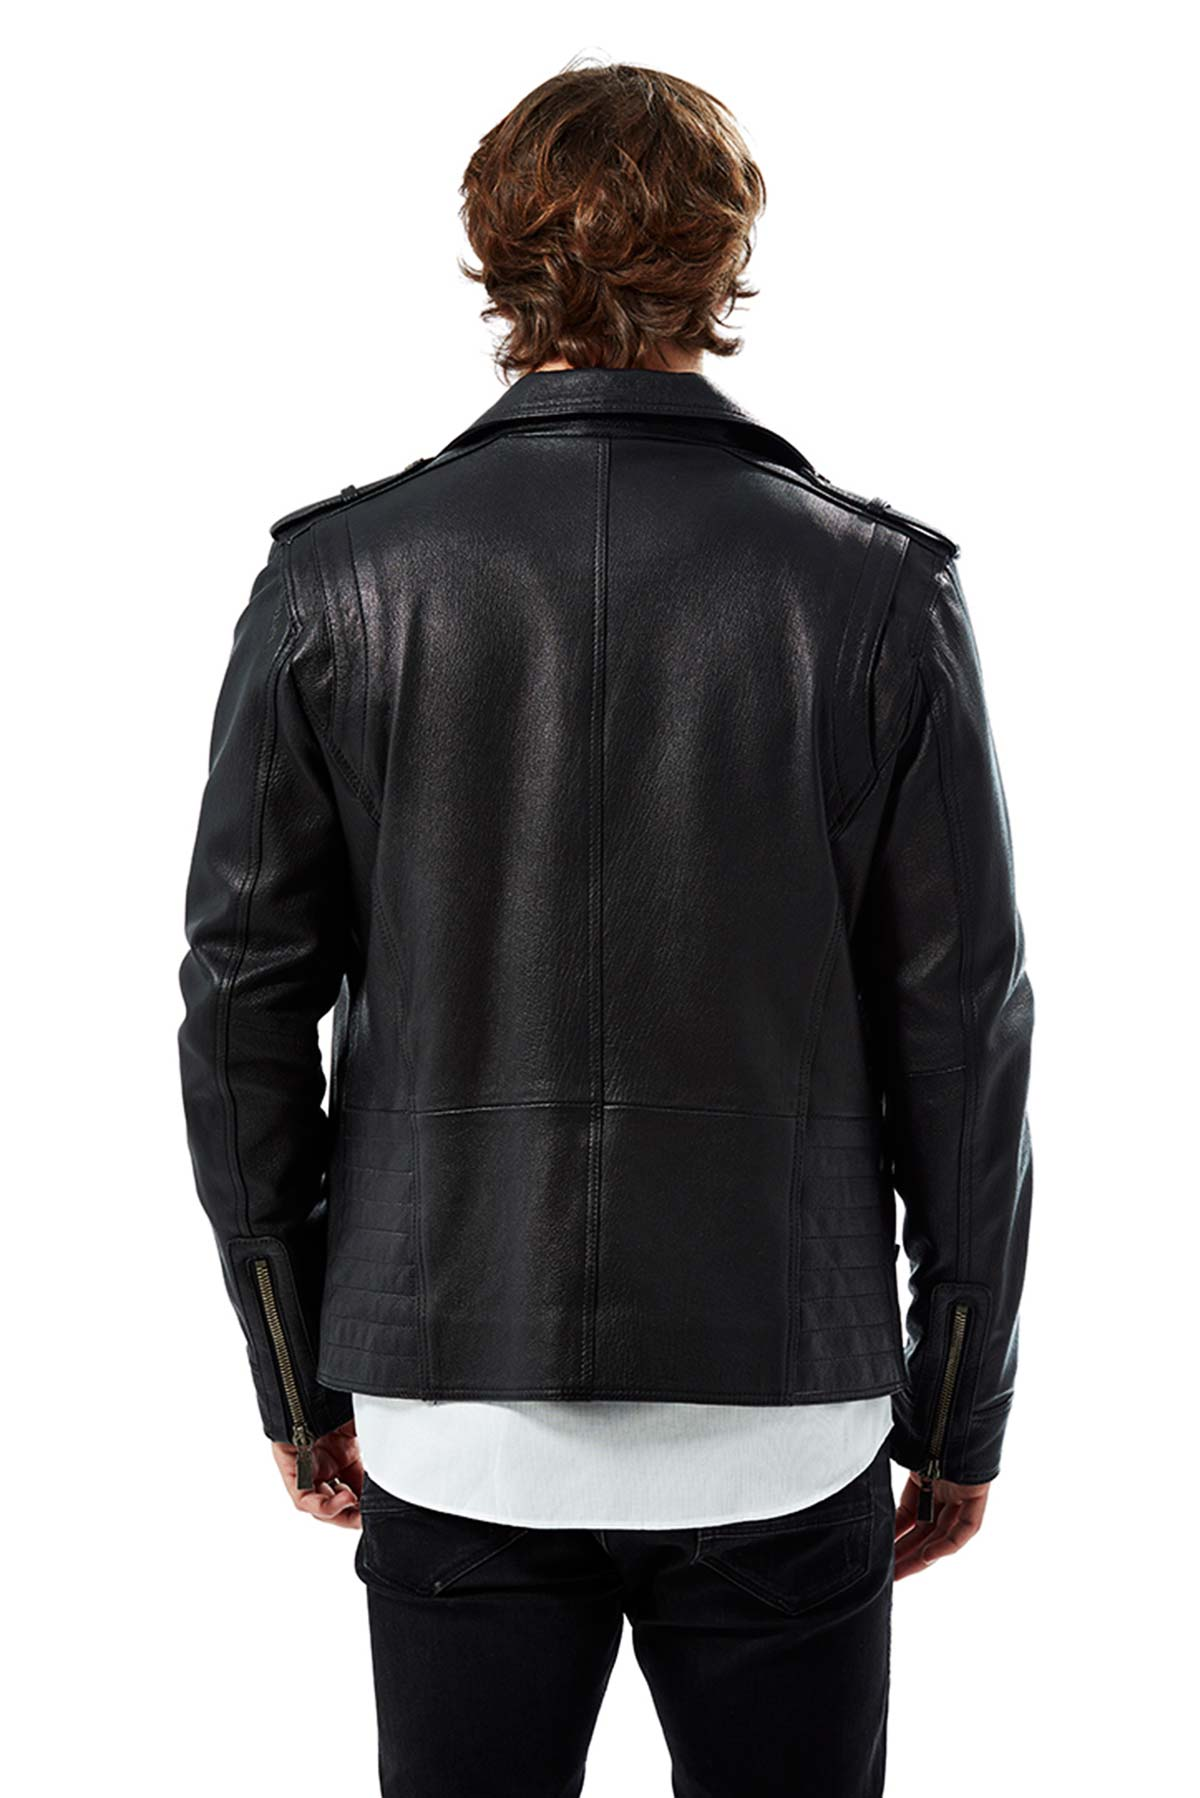 lightweight leather jackets mens